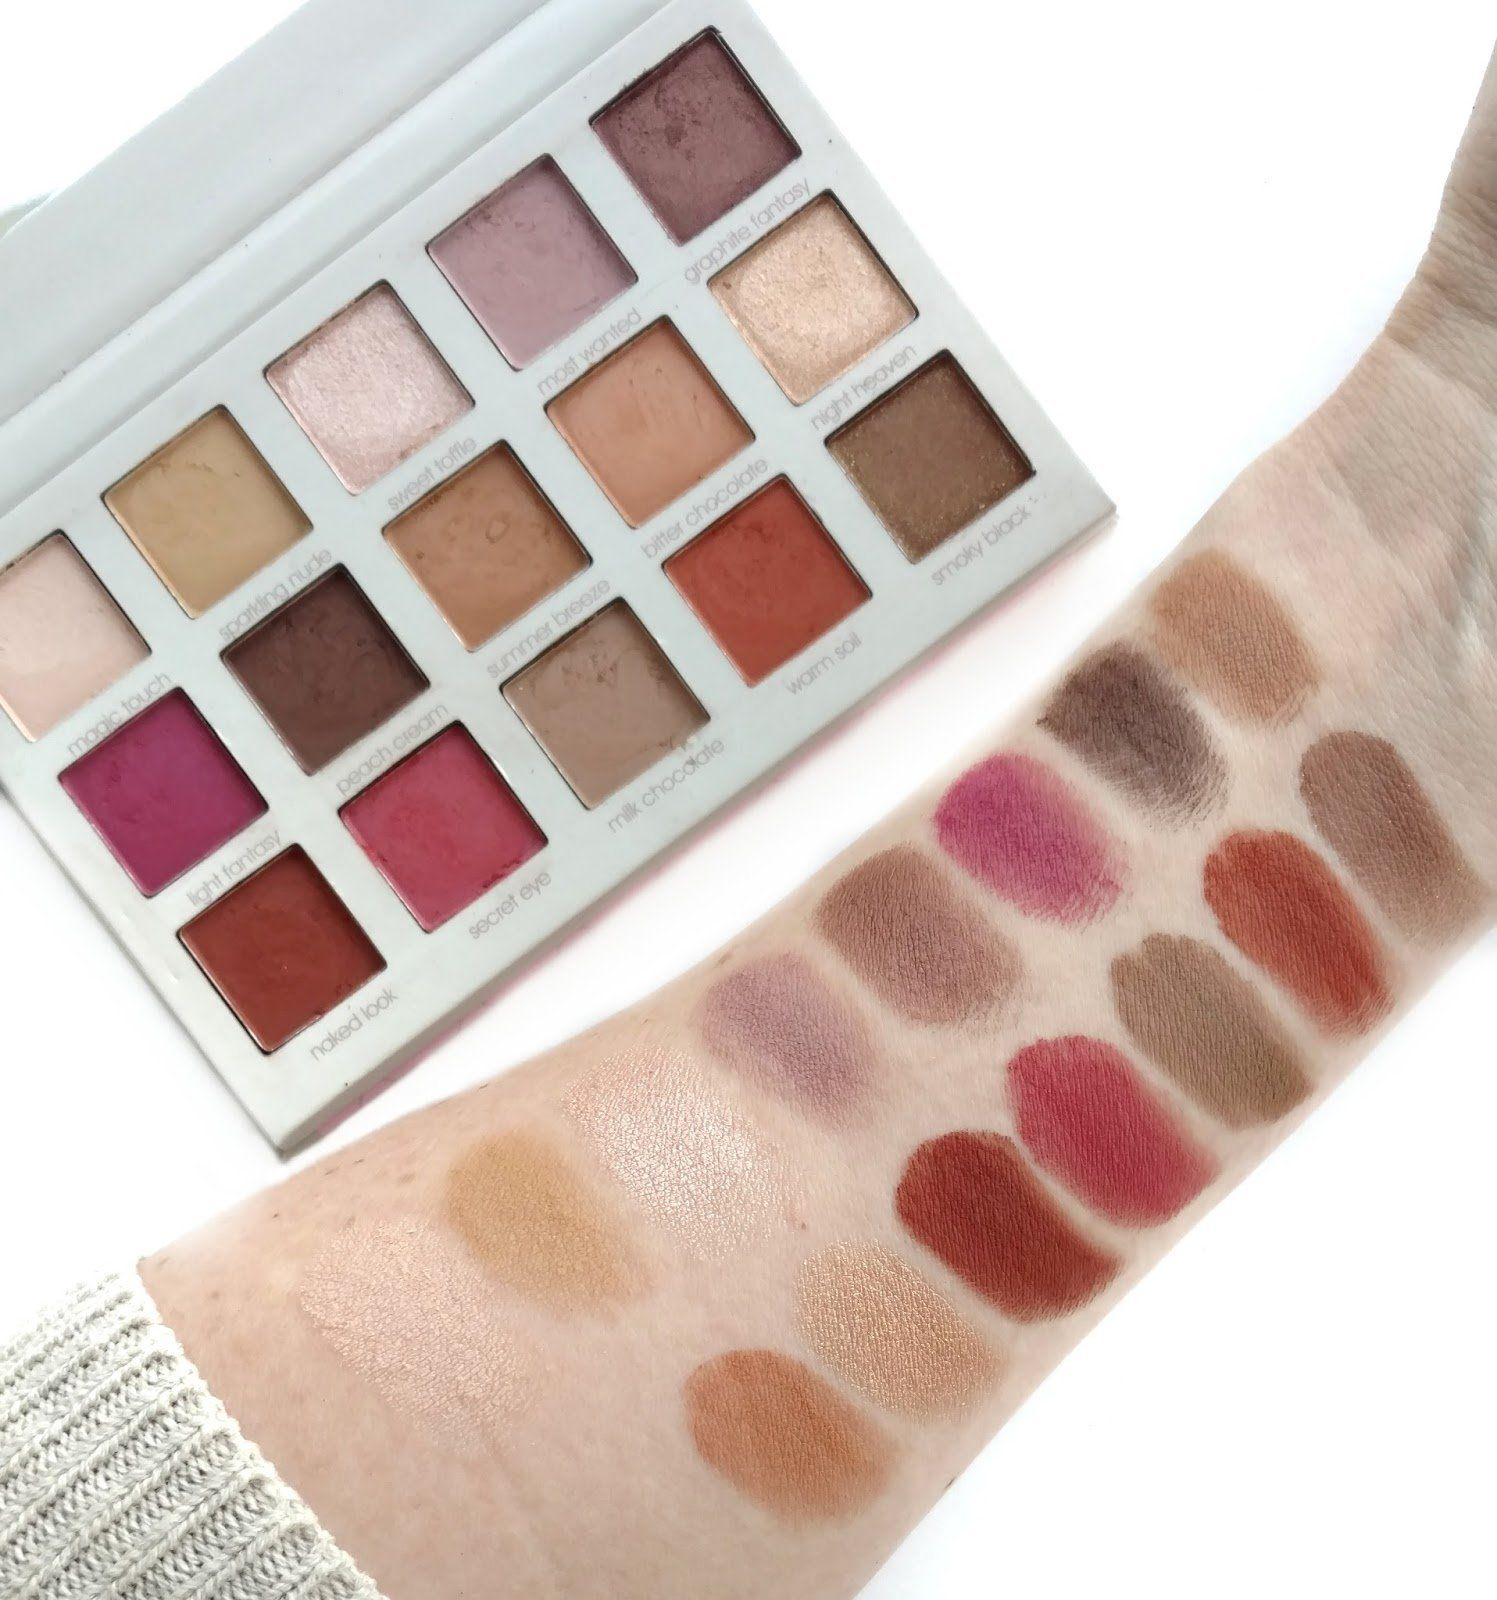 Naked Smoky Eyeshadow Palette by Urban Decay #8